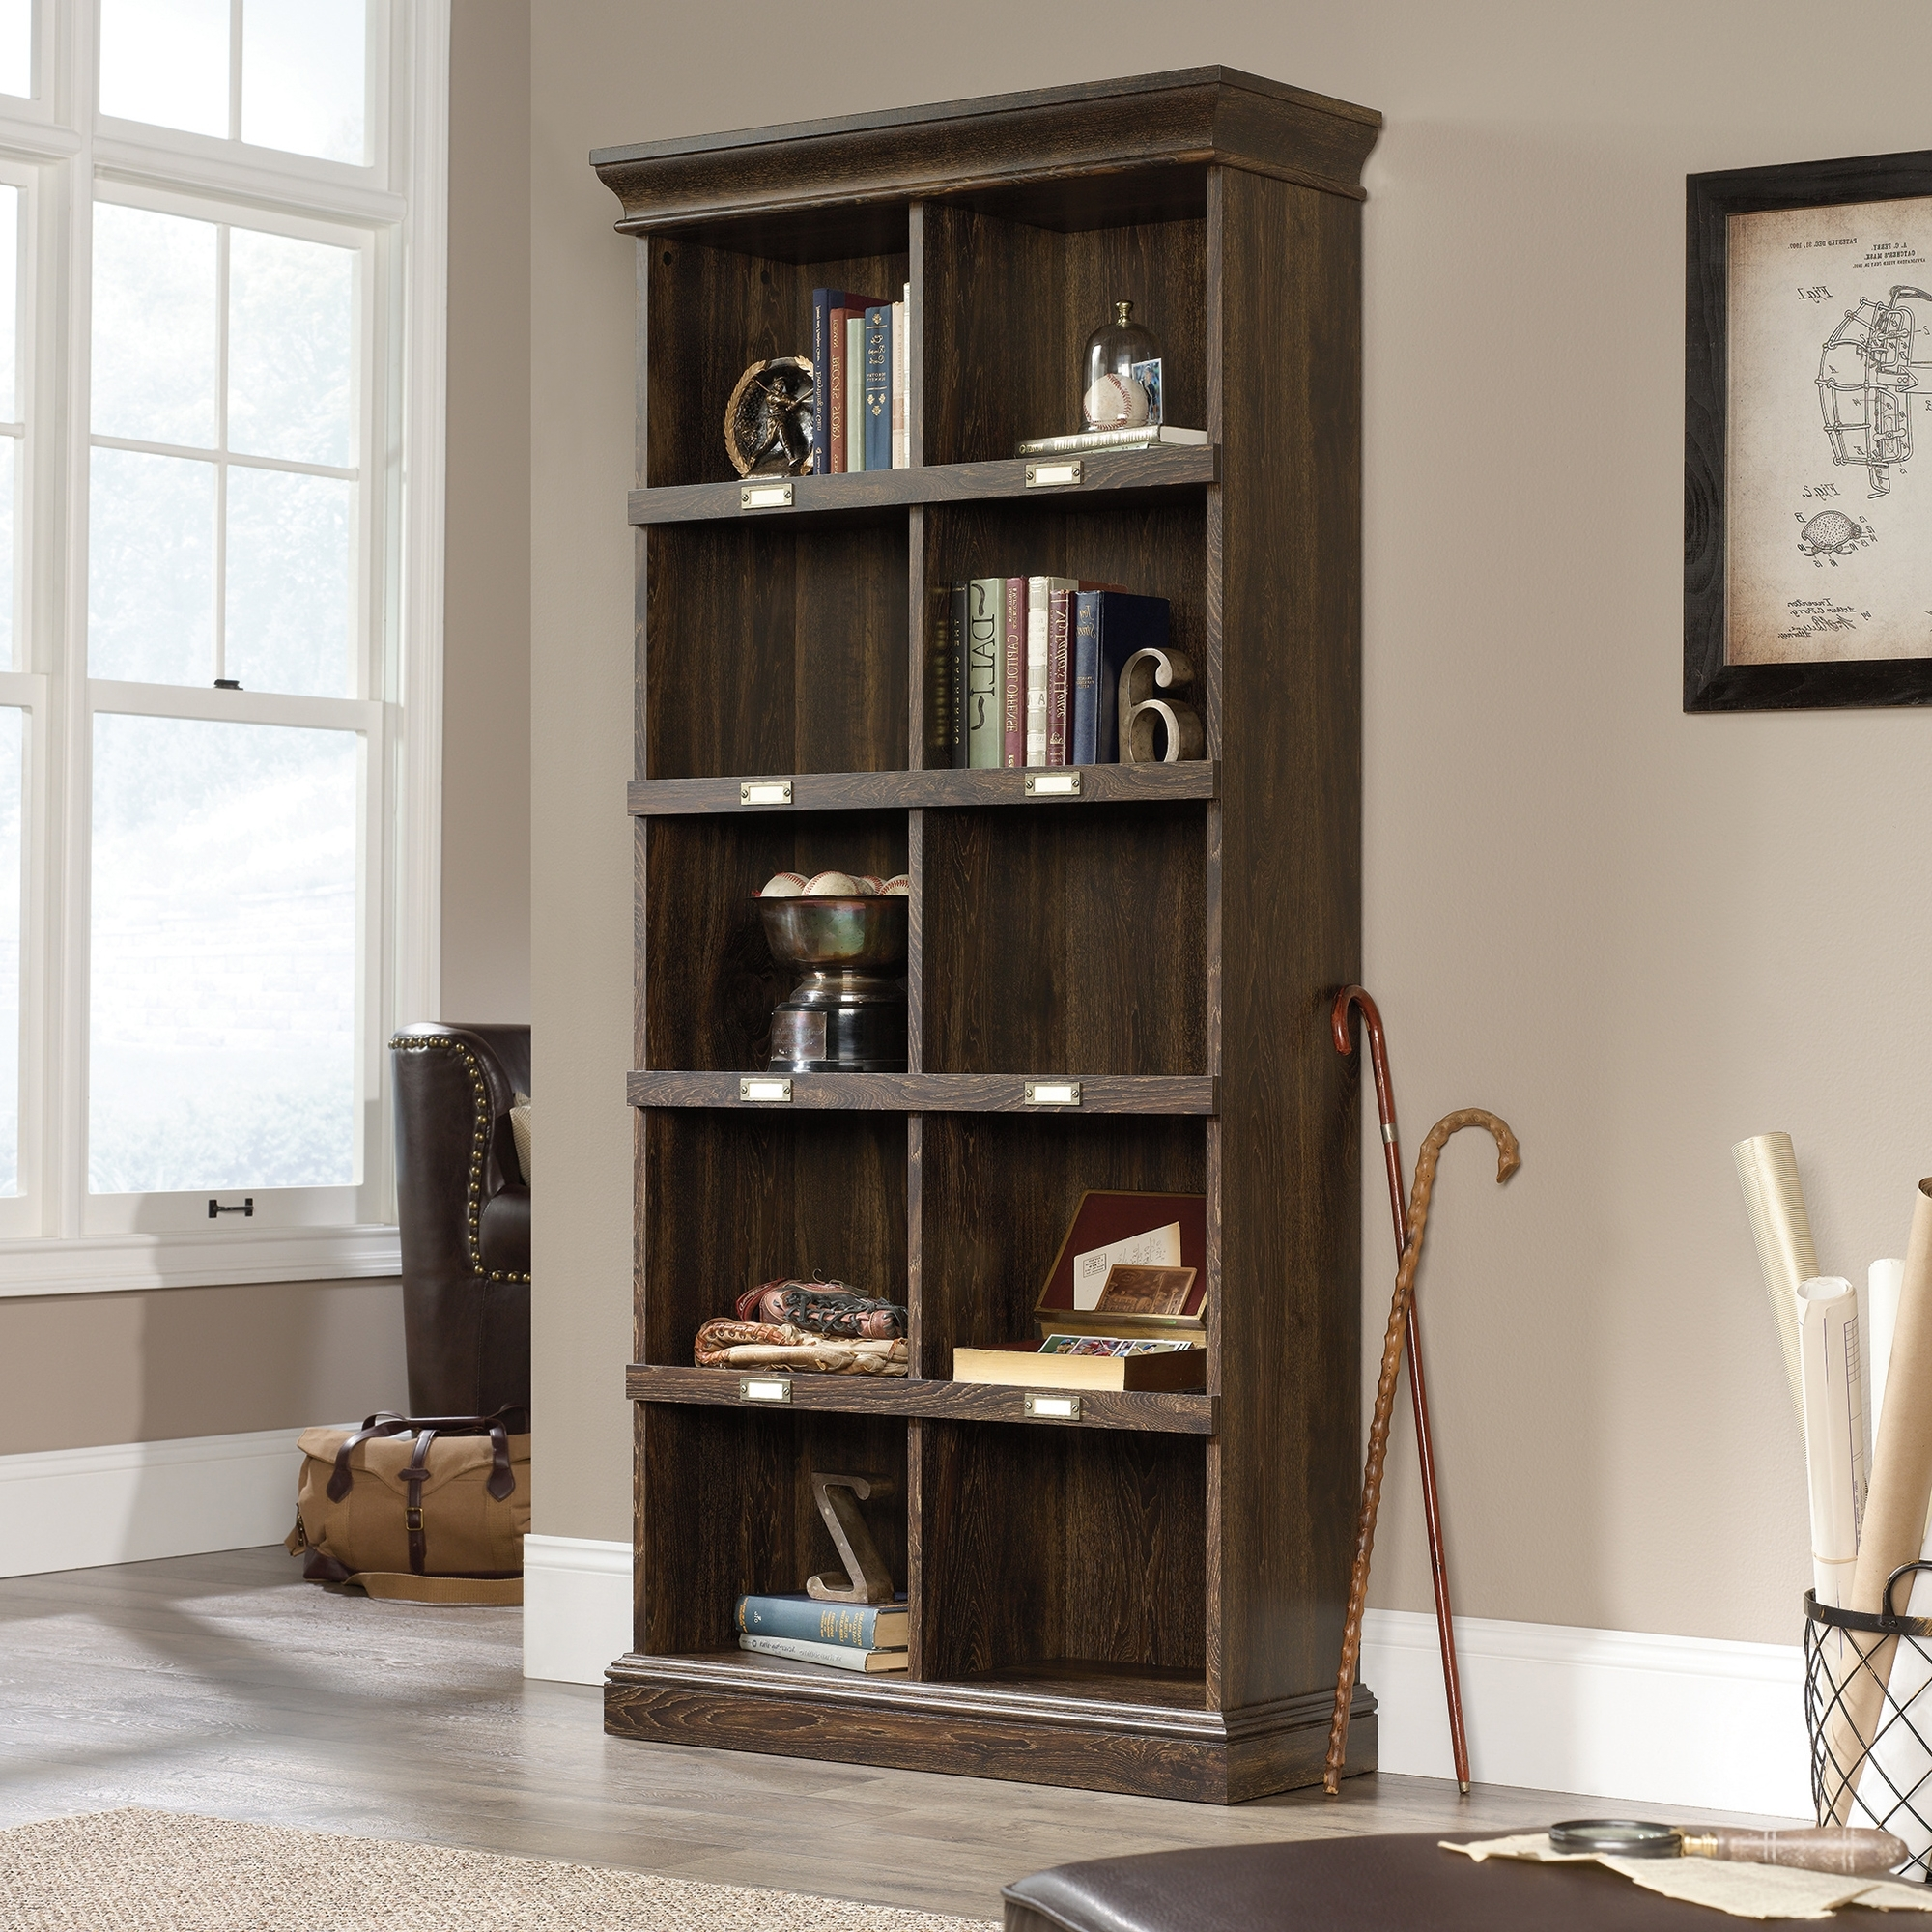 Barrister Lane Bookcases In Newest Barrister Lane Tall Bookcase (422716) – Sauder (View 5 of 15)